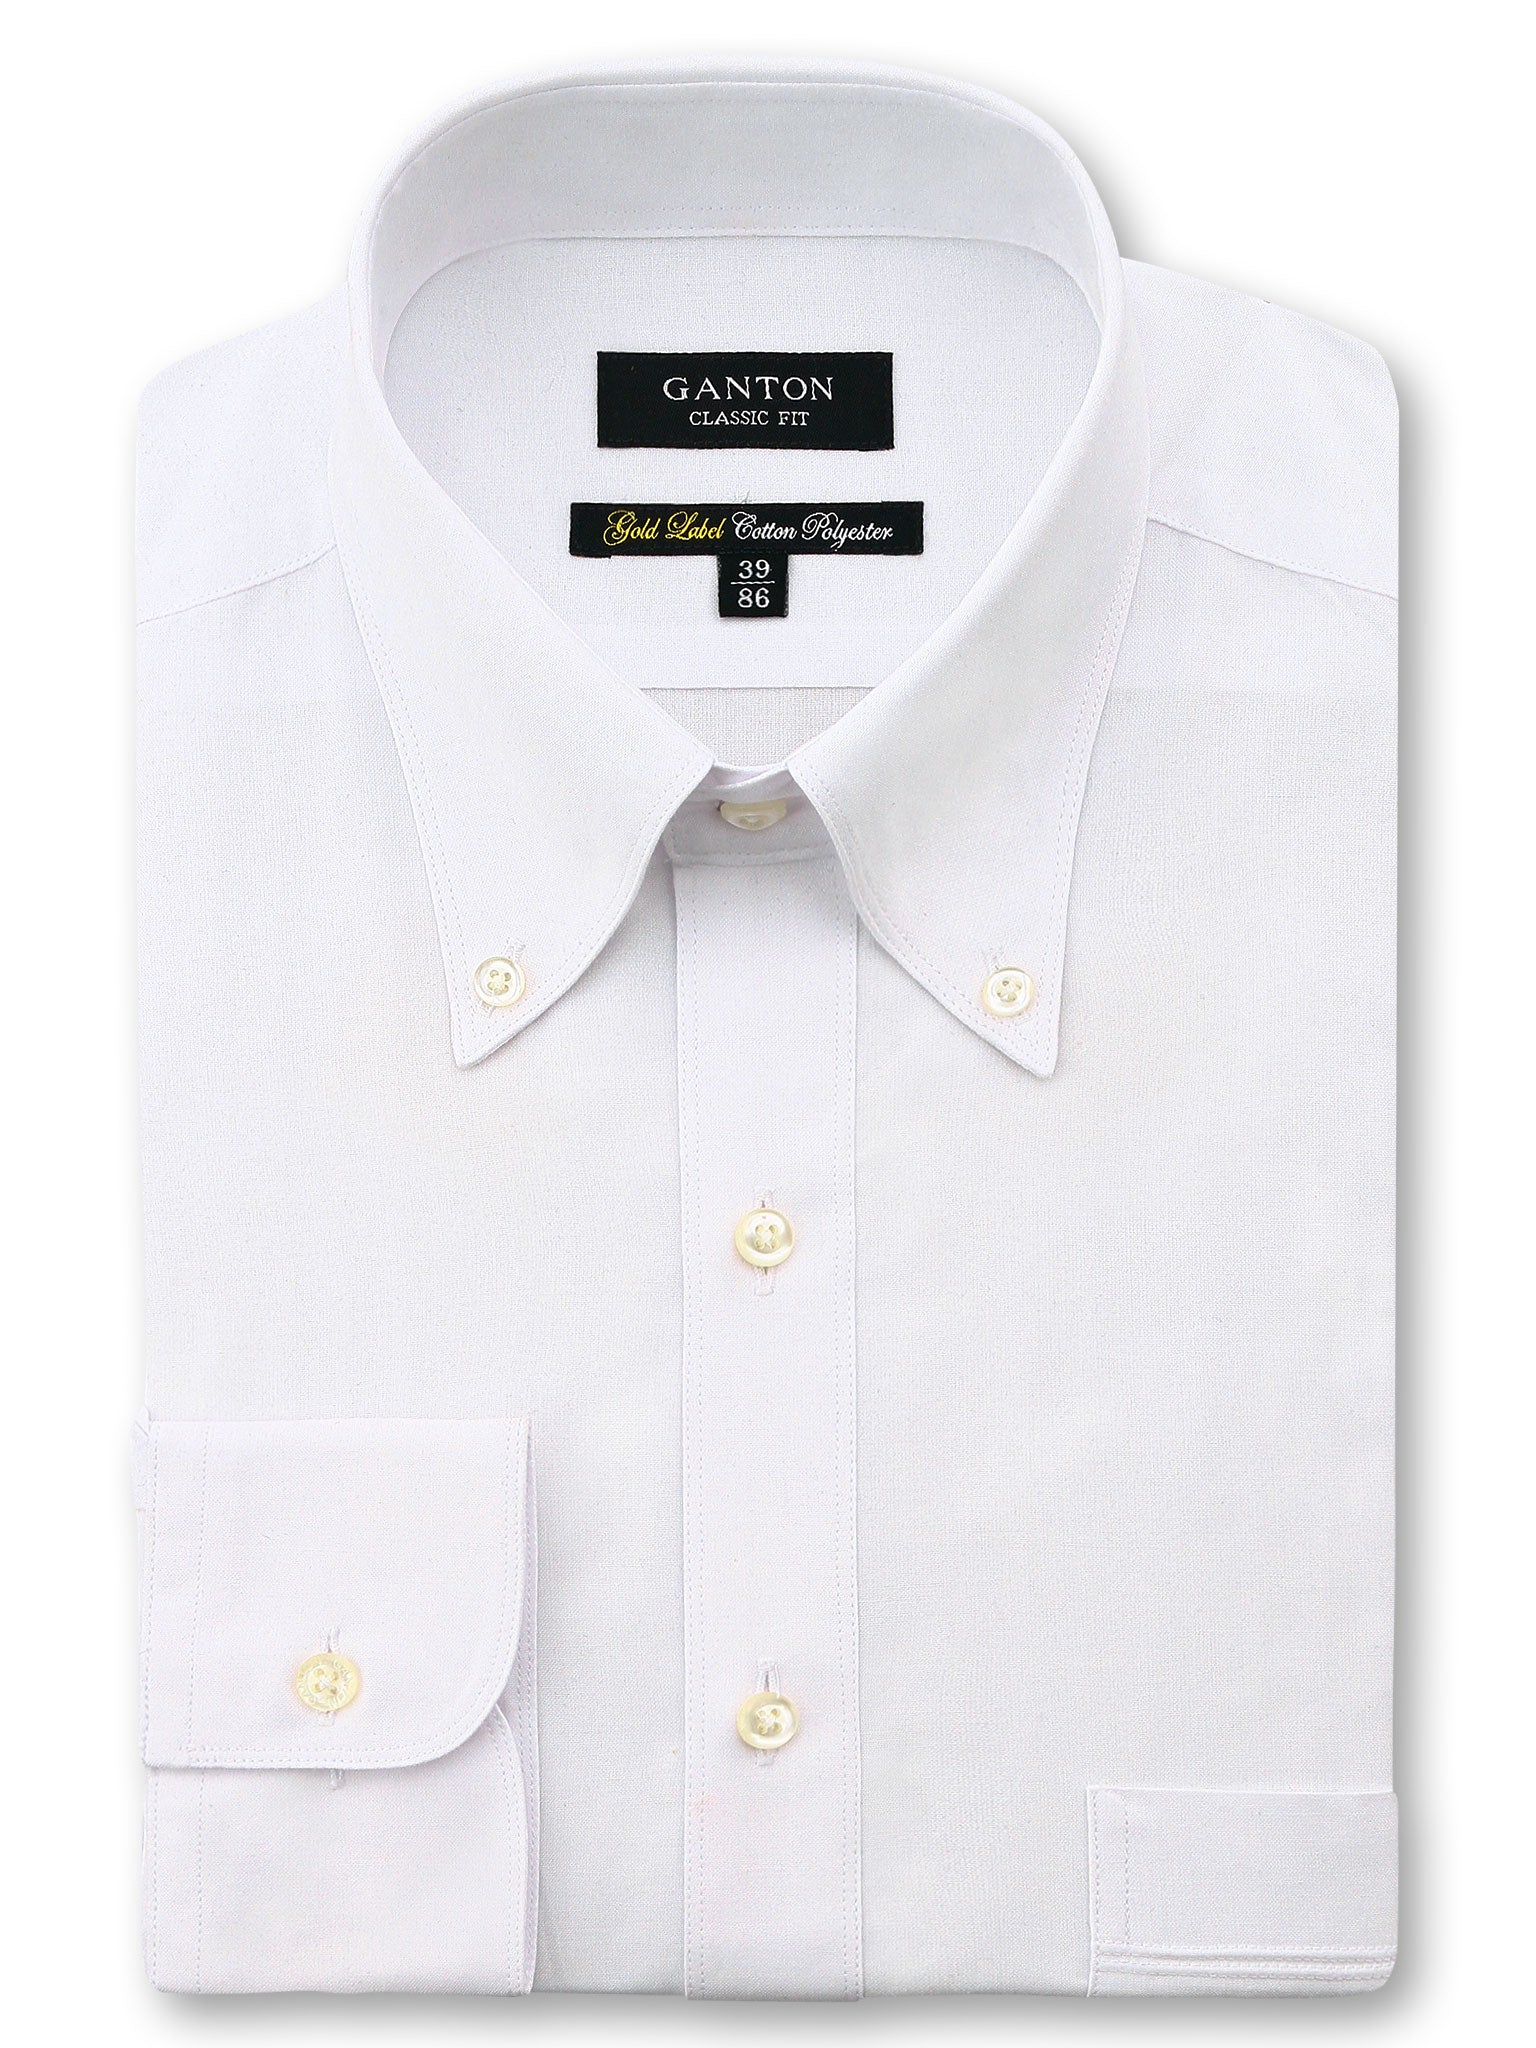 All White Gold Label Classic Fit Button Down Cotton Polyester Shirt